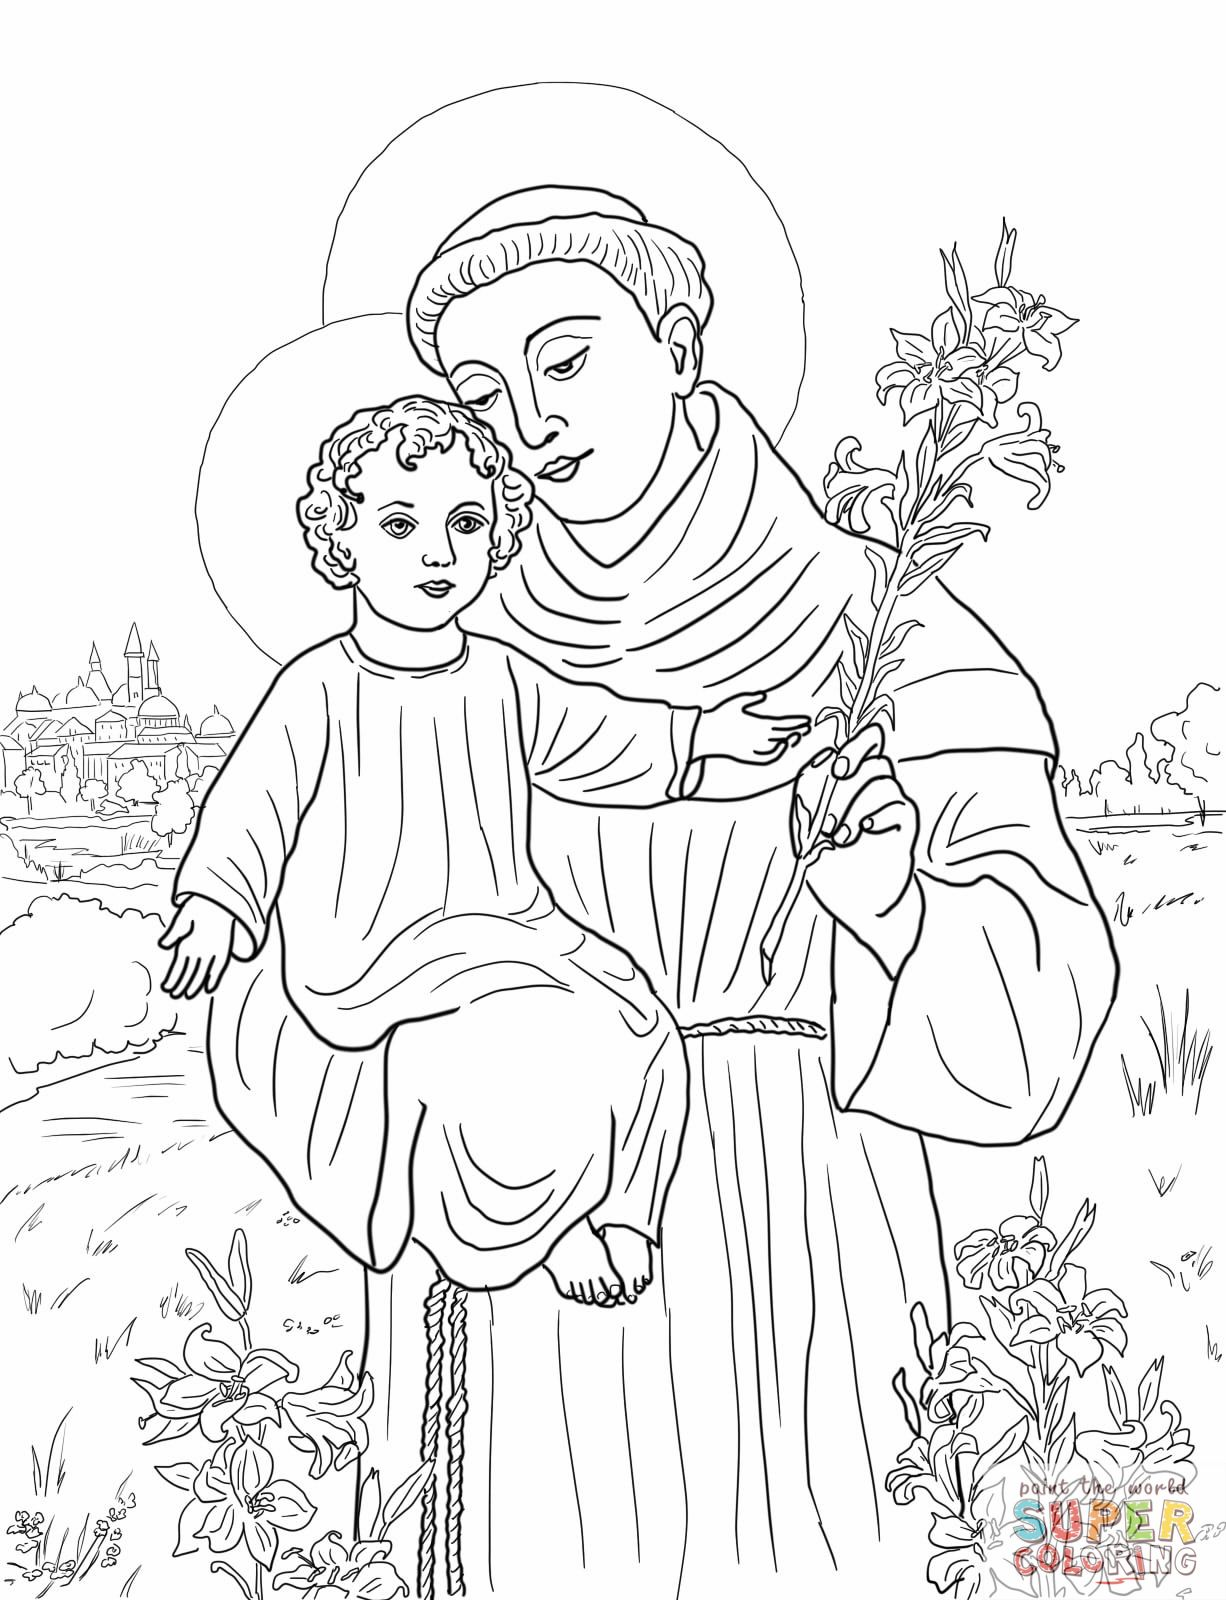 st.-anthony-of-padua-coloring-page.jpg 1,226×1,600 pixels ...